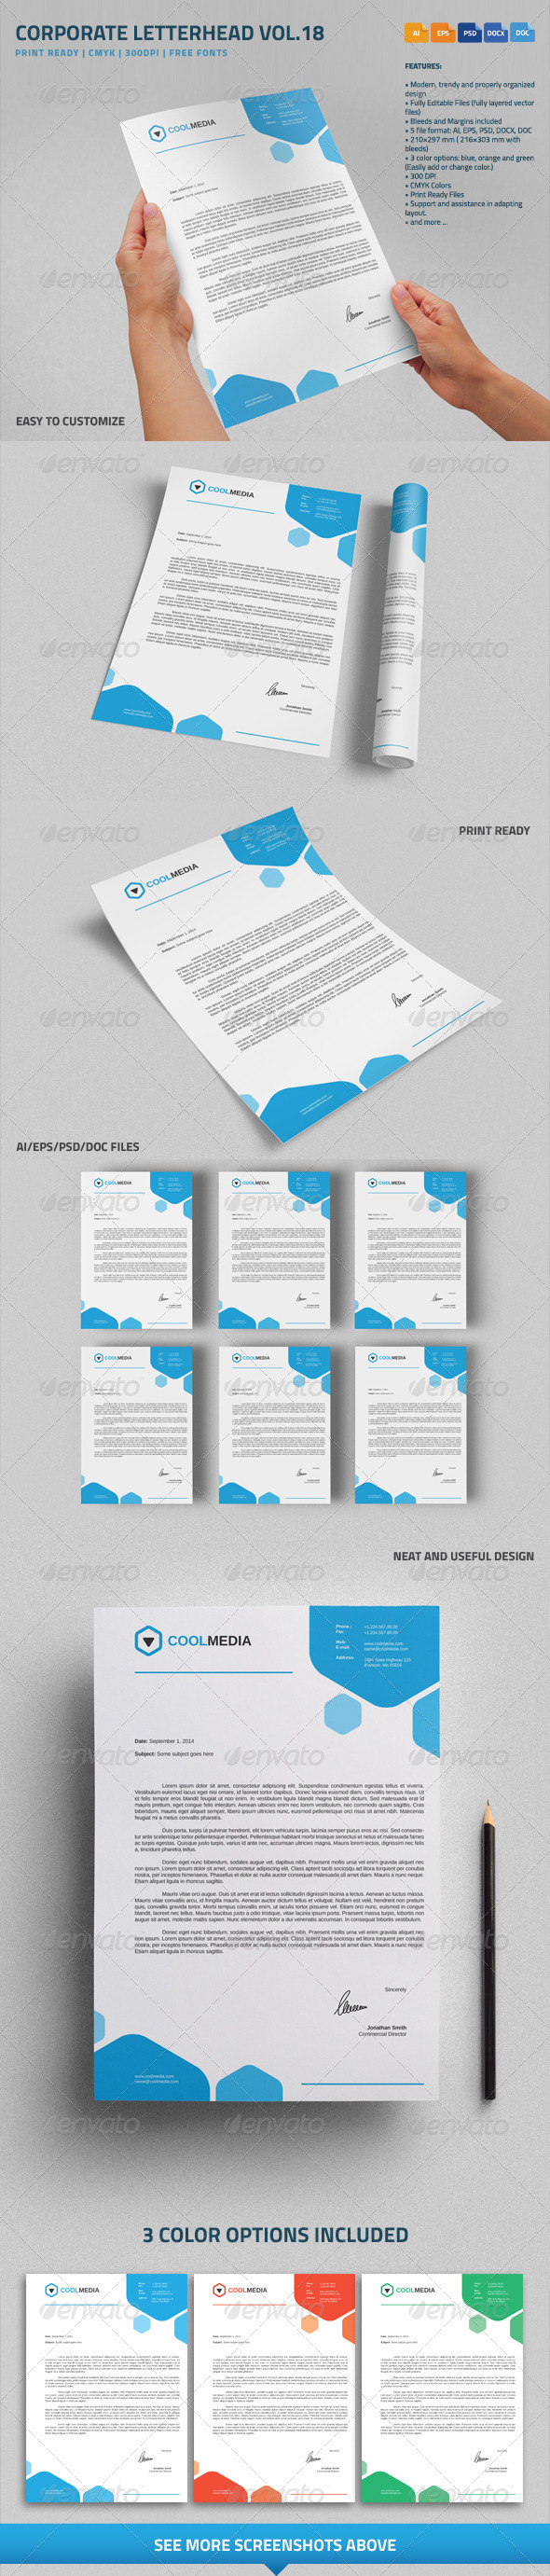 GraphicRiver Corporate Letterhead Vol.18 with MS Word DOC DOCX 8738170